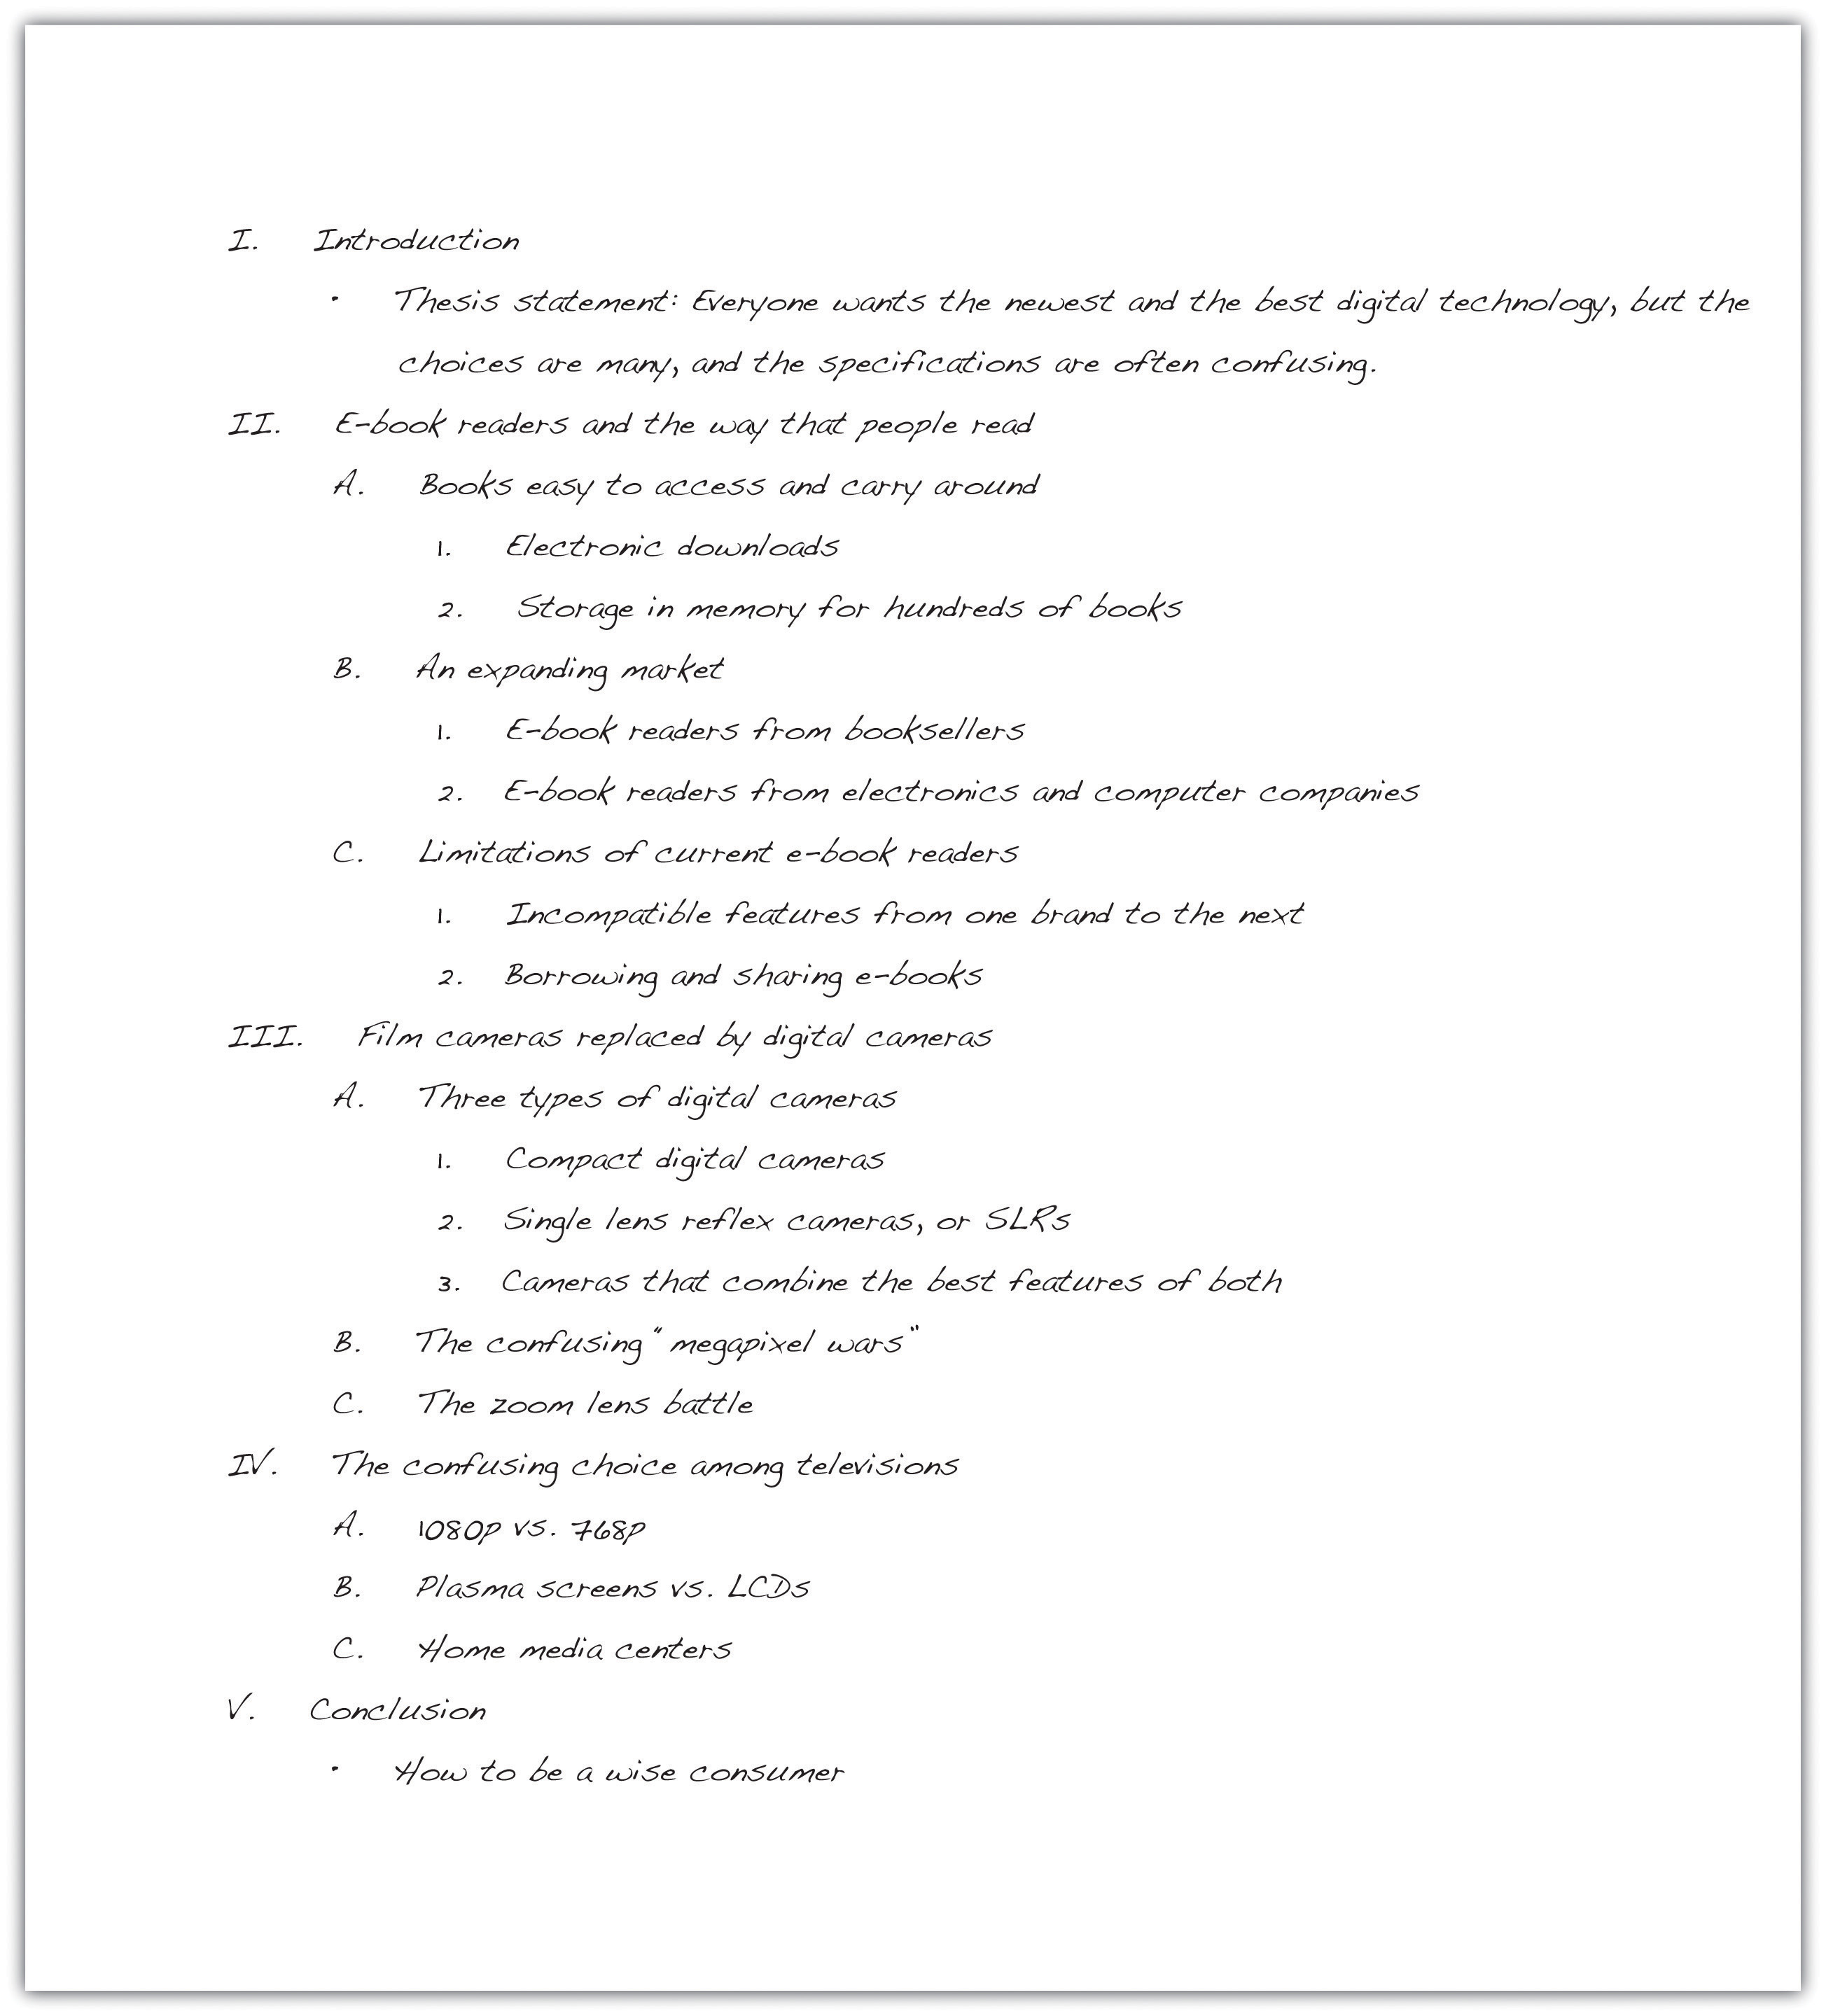 017 Essay Example Outline Marvelous For Writing Introduction Argumentative Full